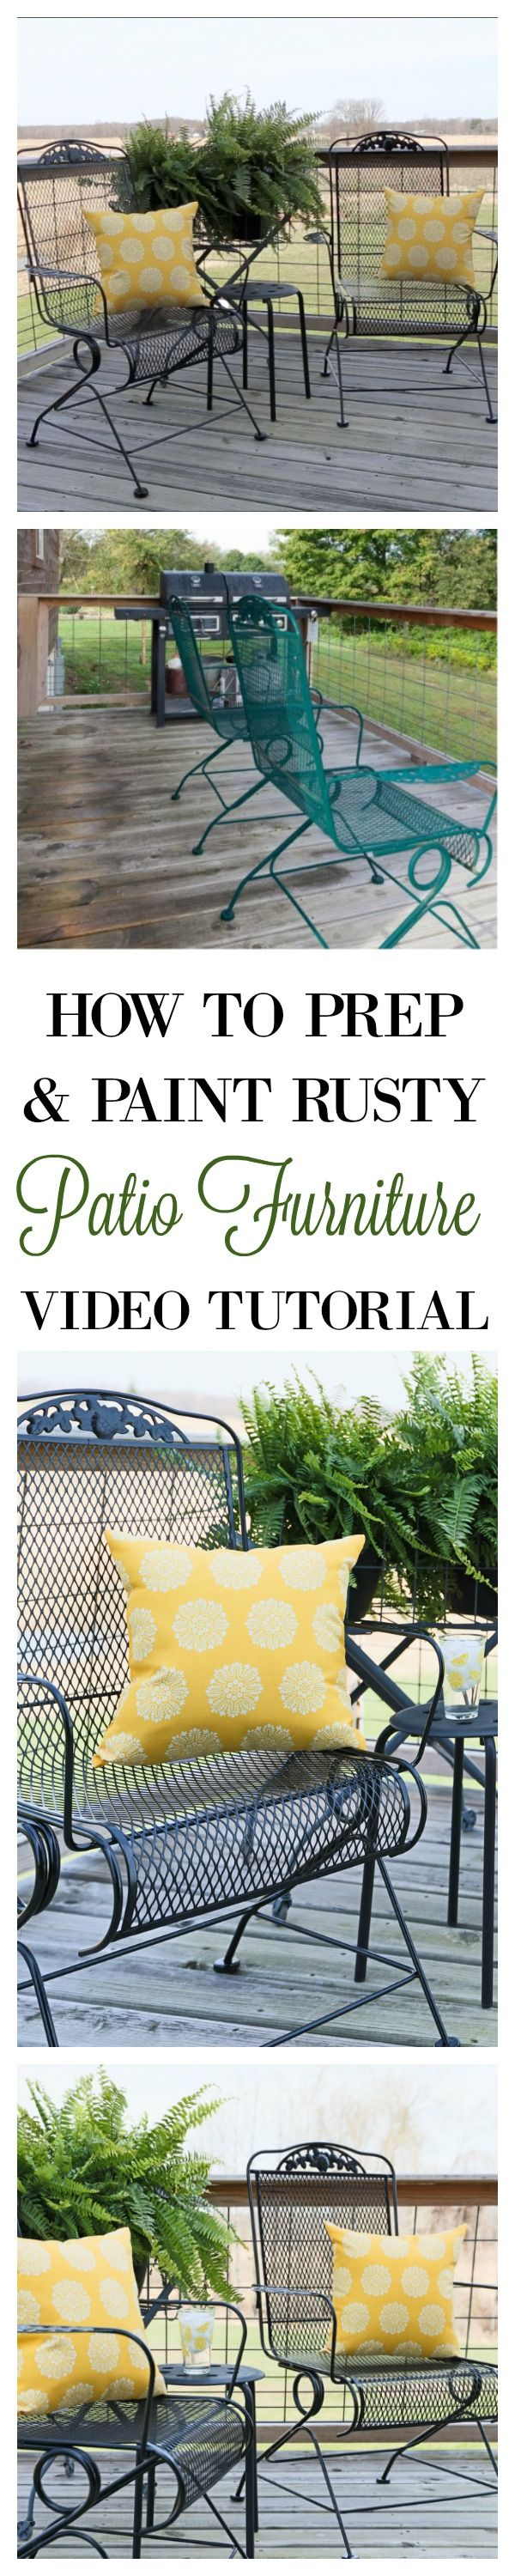 Metal Patio Furniture Patio Furniture Jacksonville Fl How To Prep Paint  Metal Deck Furniture Video Tutorial